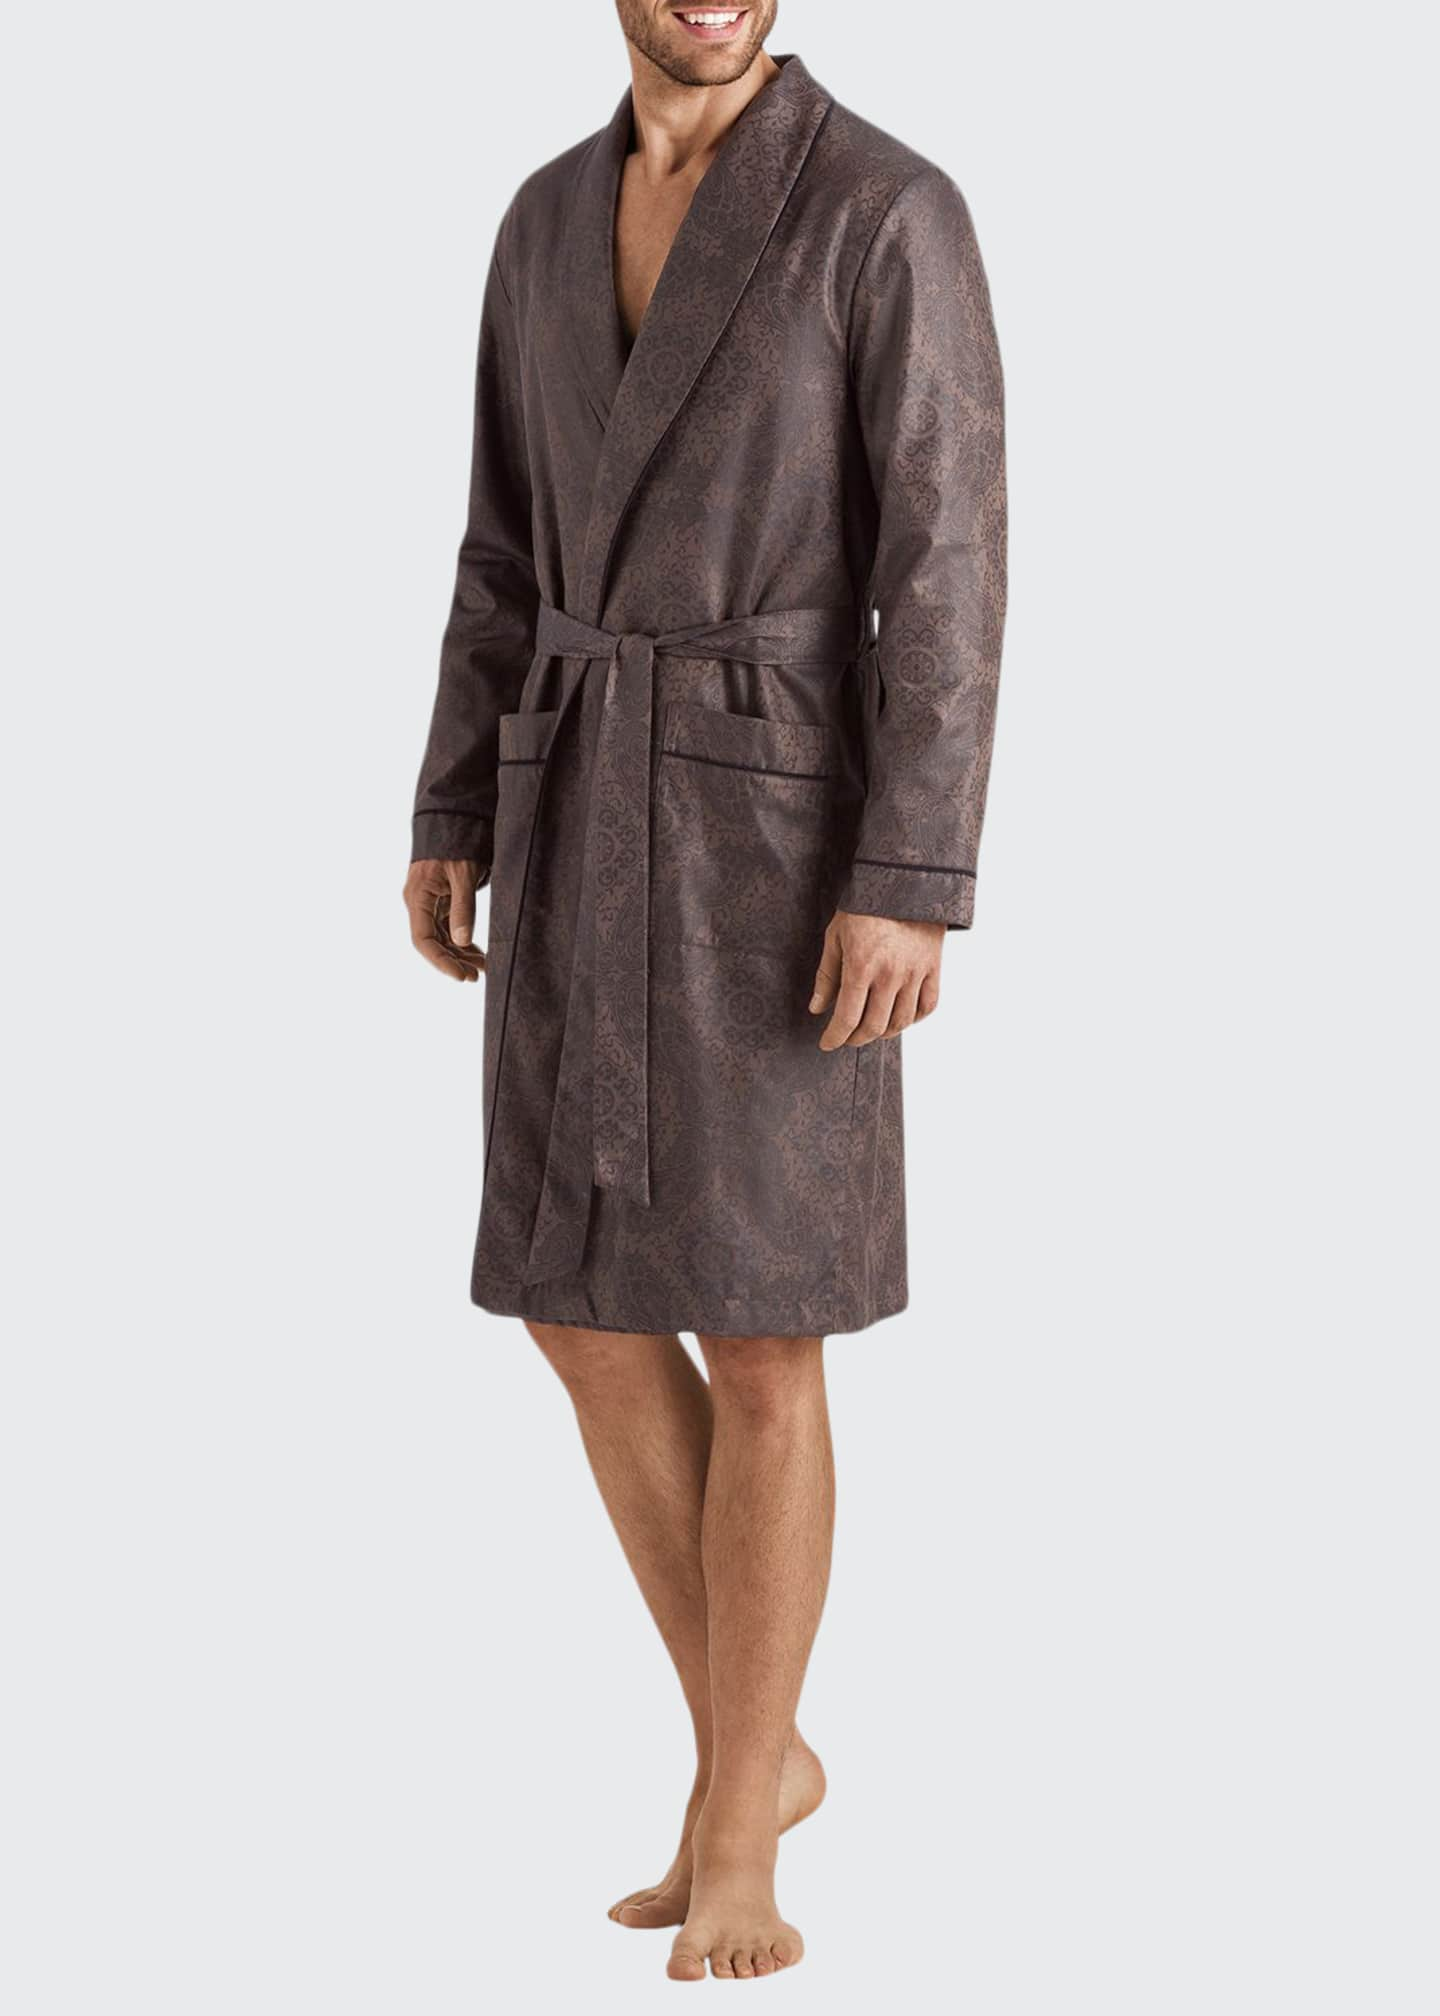 Hanro Men's Select Paisley Medallion Cotton Robe